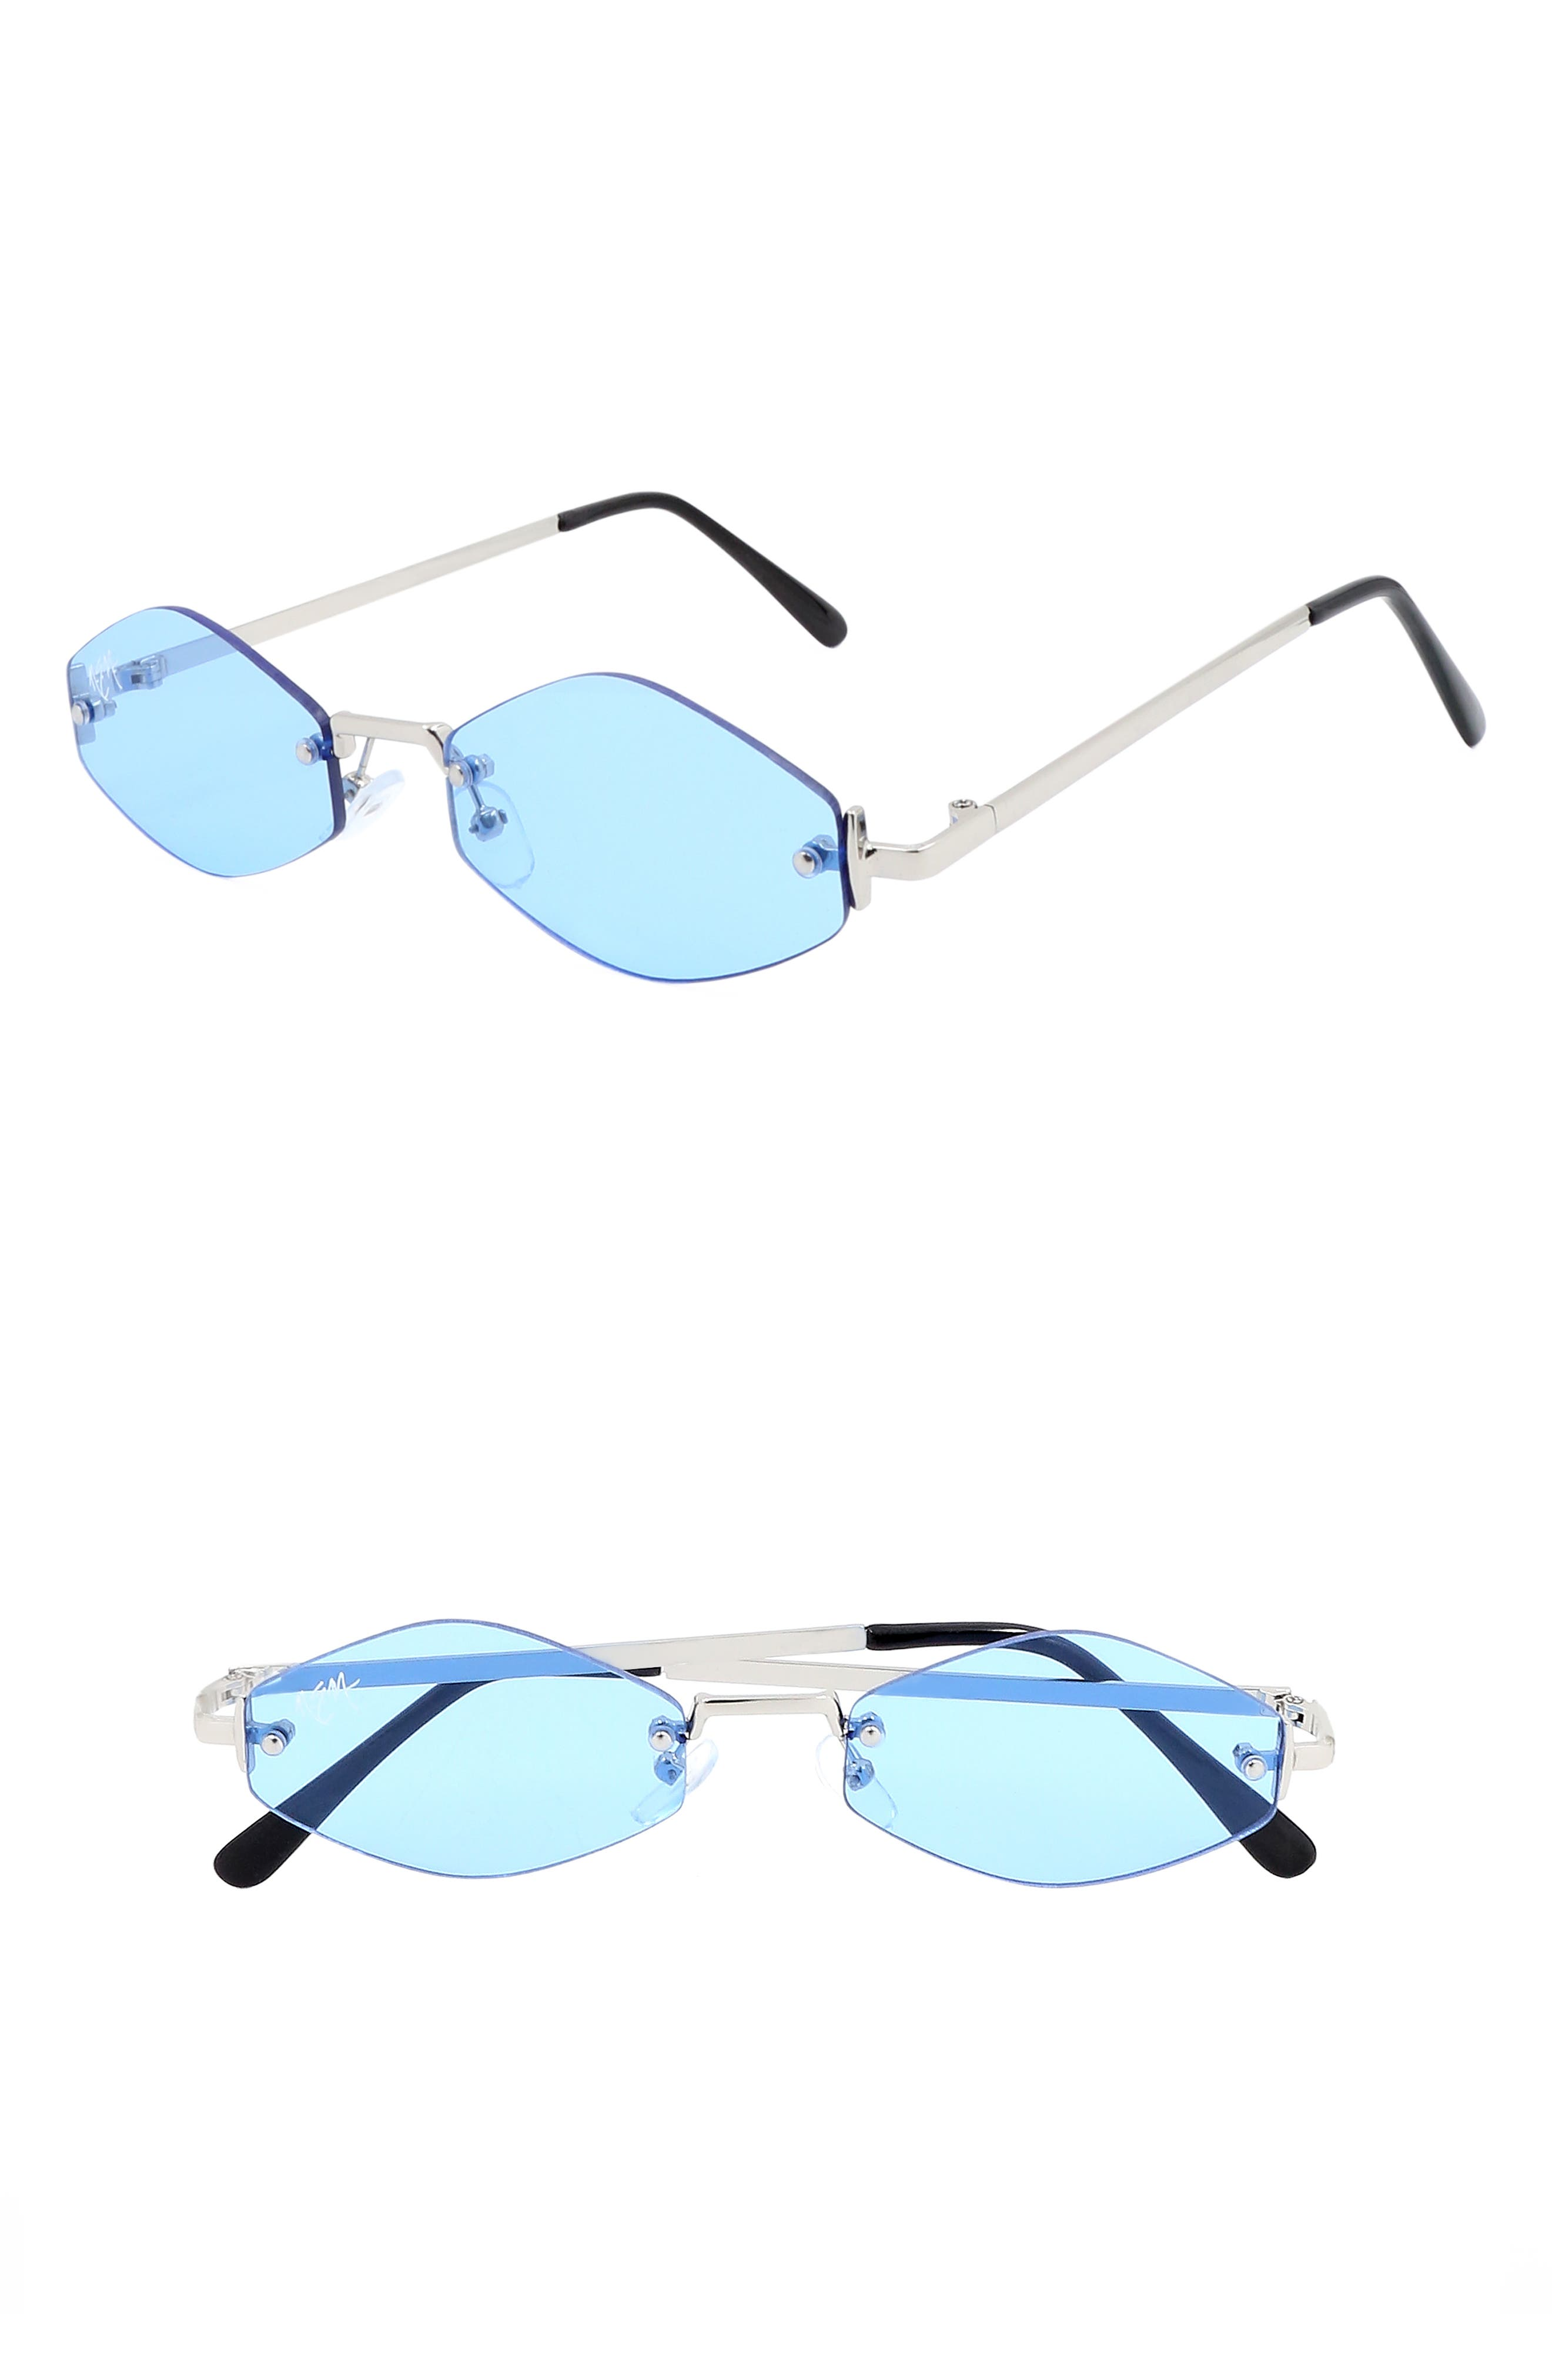 Retro 55mm Rimless Geometric Sunglasses,                             Main thumbnail 1, color,                             BABY BLUE/ SILVER